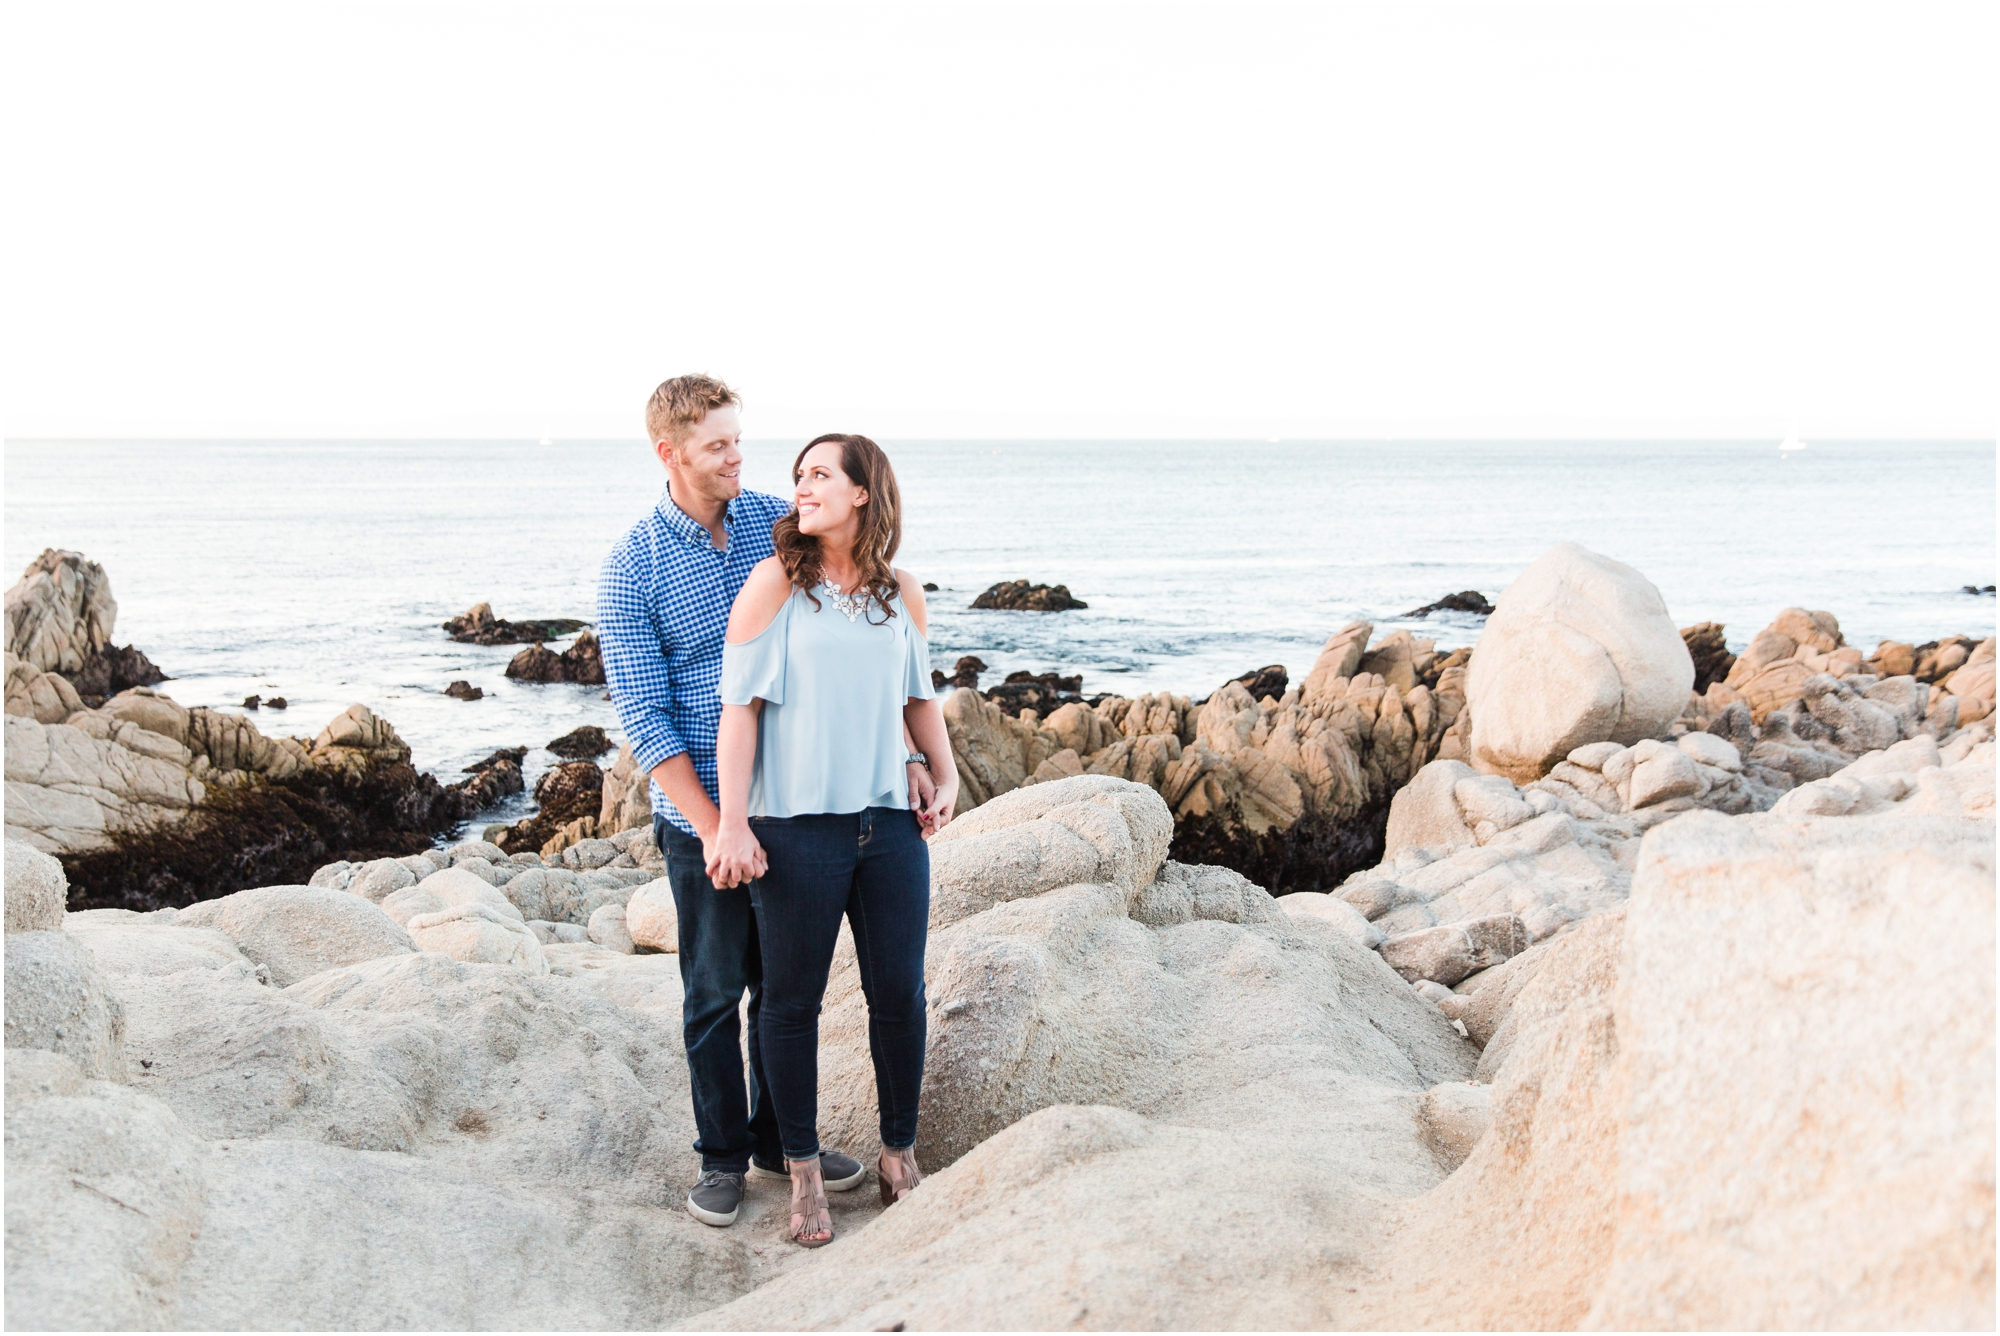 Berwick Park Monterey engagement pictures by Briana Calderon Photography_2400.jpg